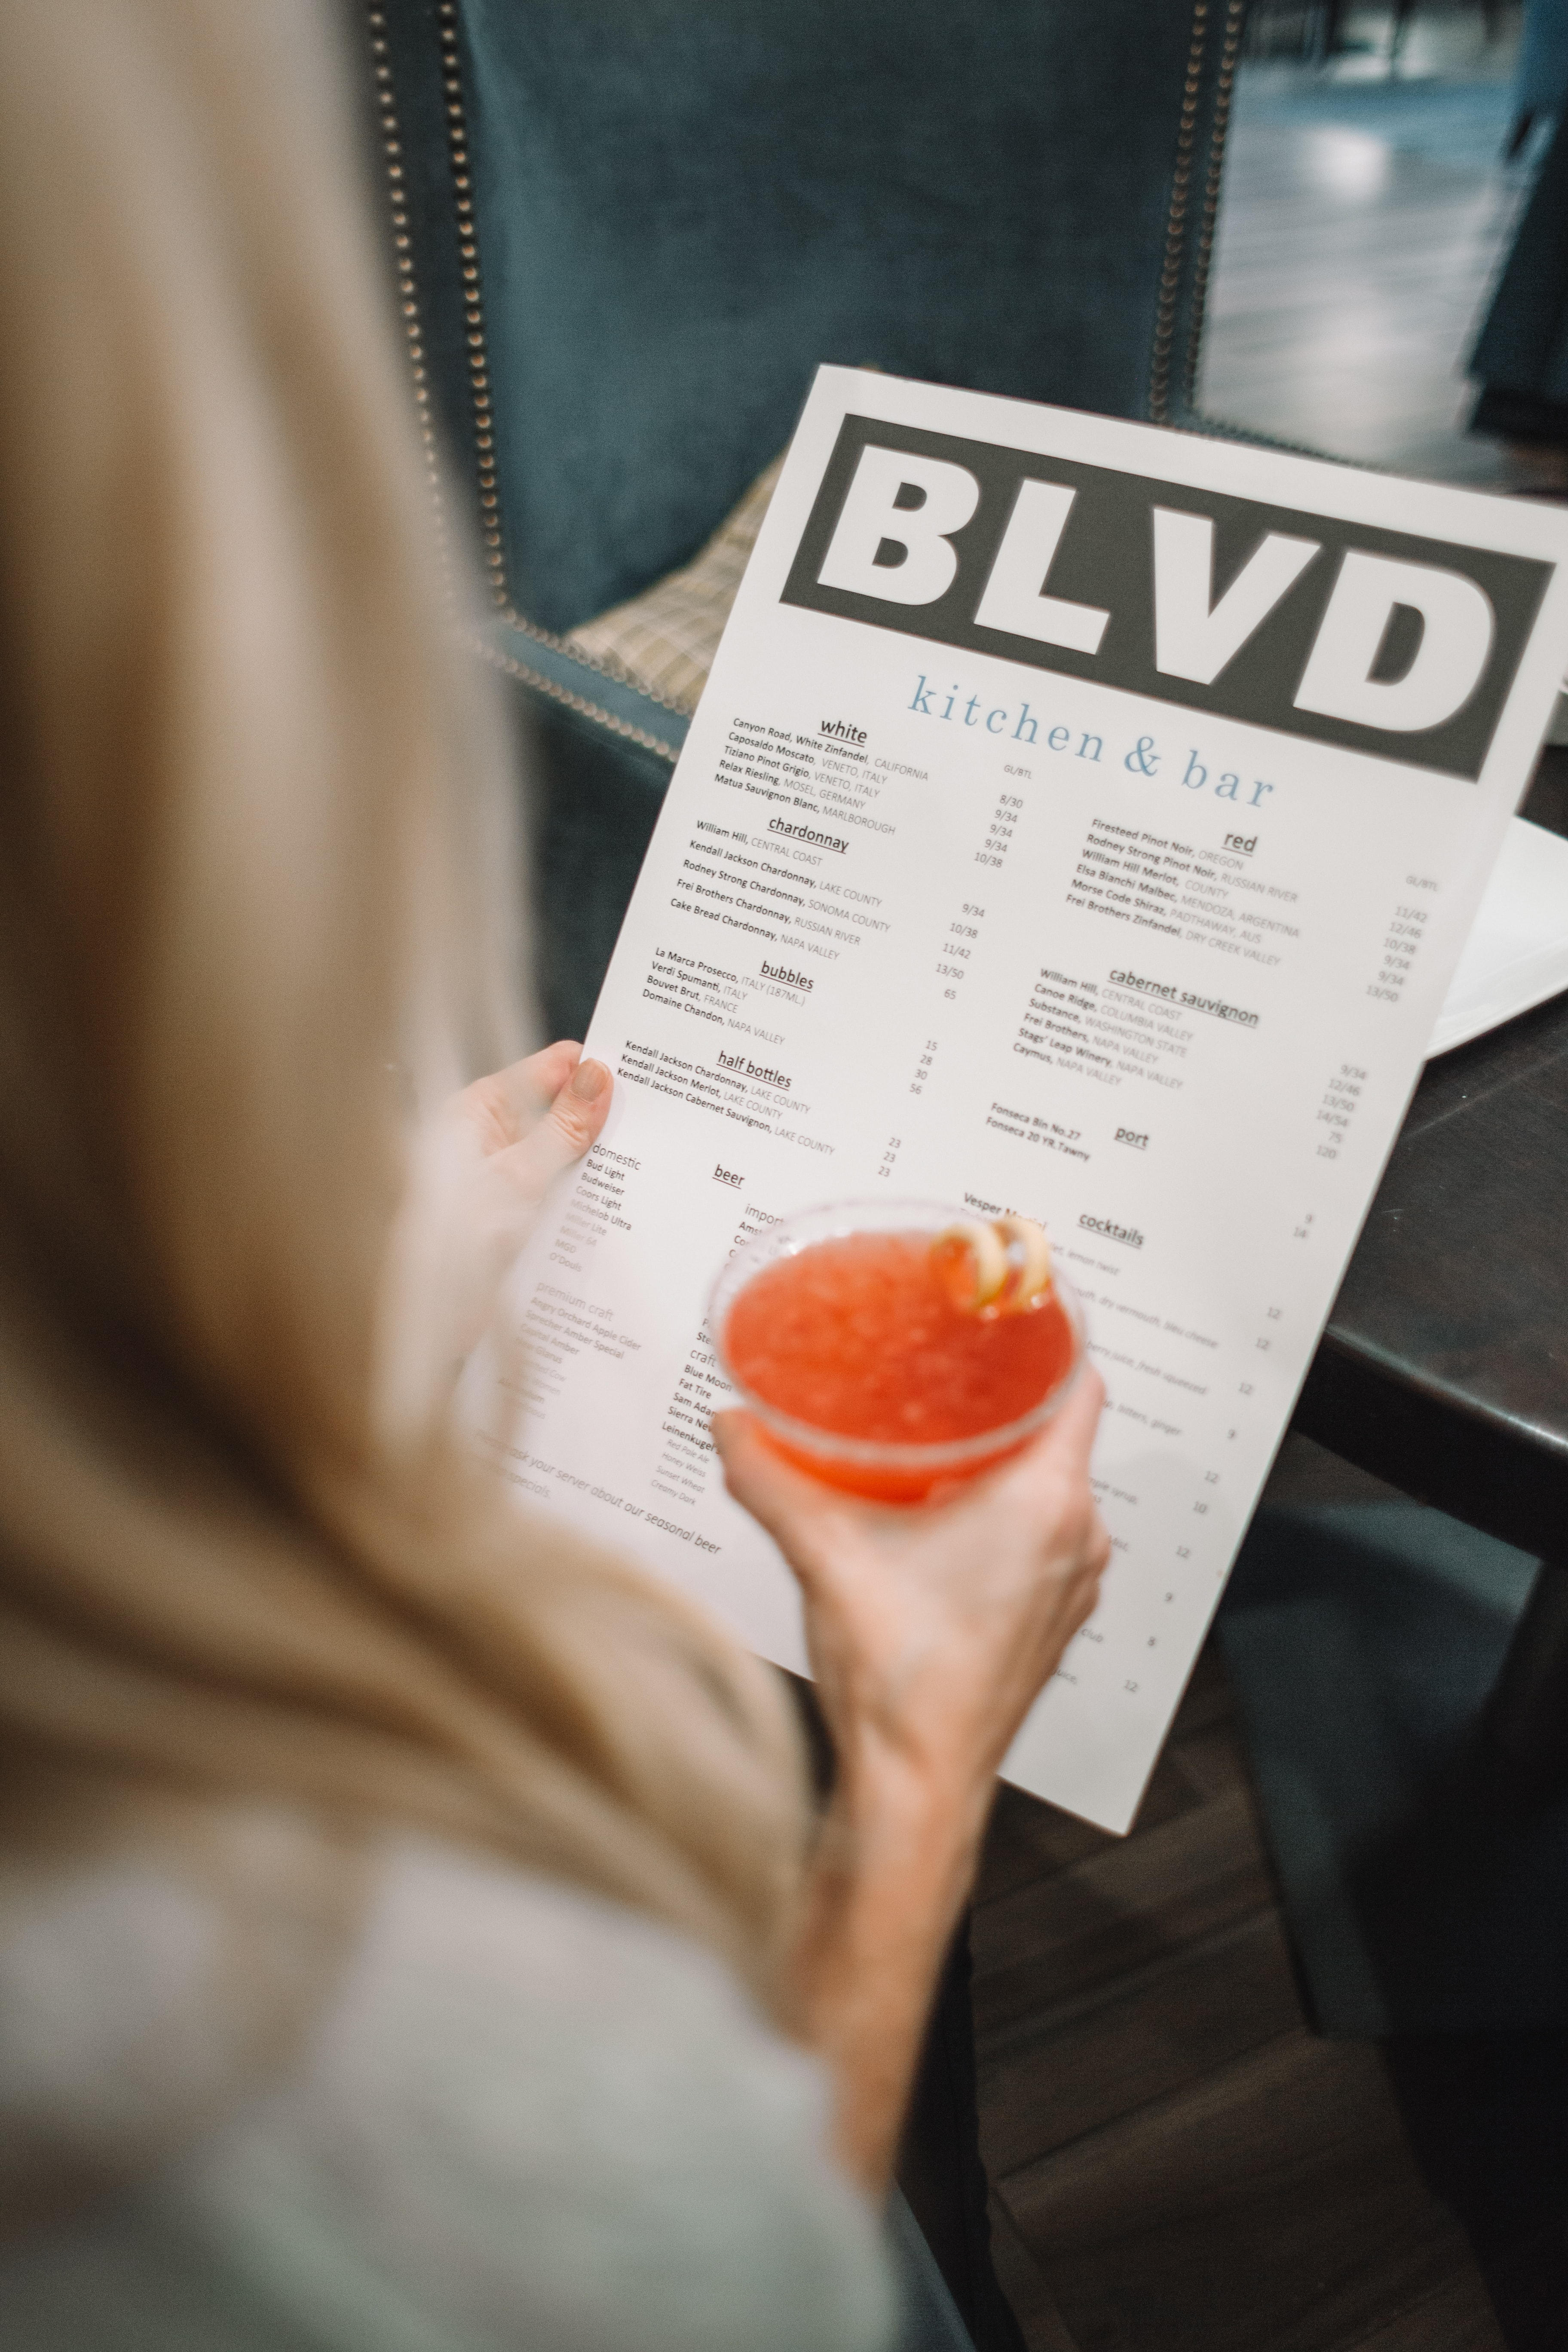 Free Design Tools for Making Professional Menus for Your Restaurant